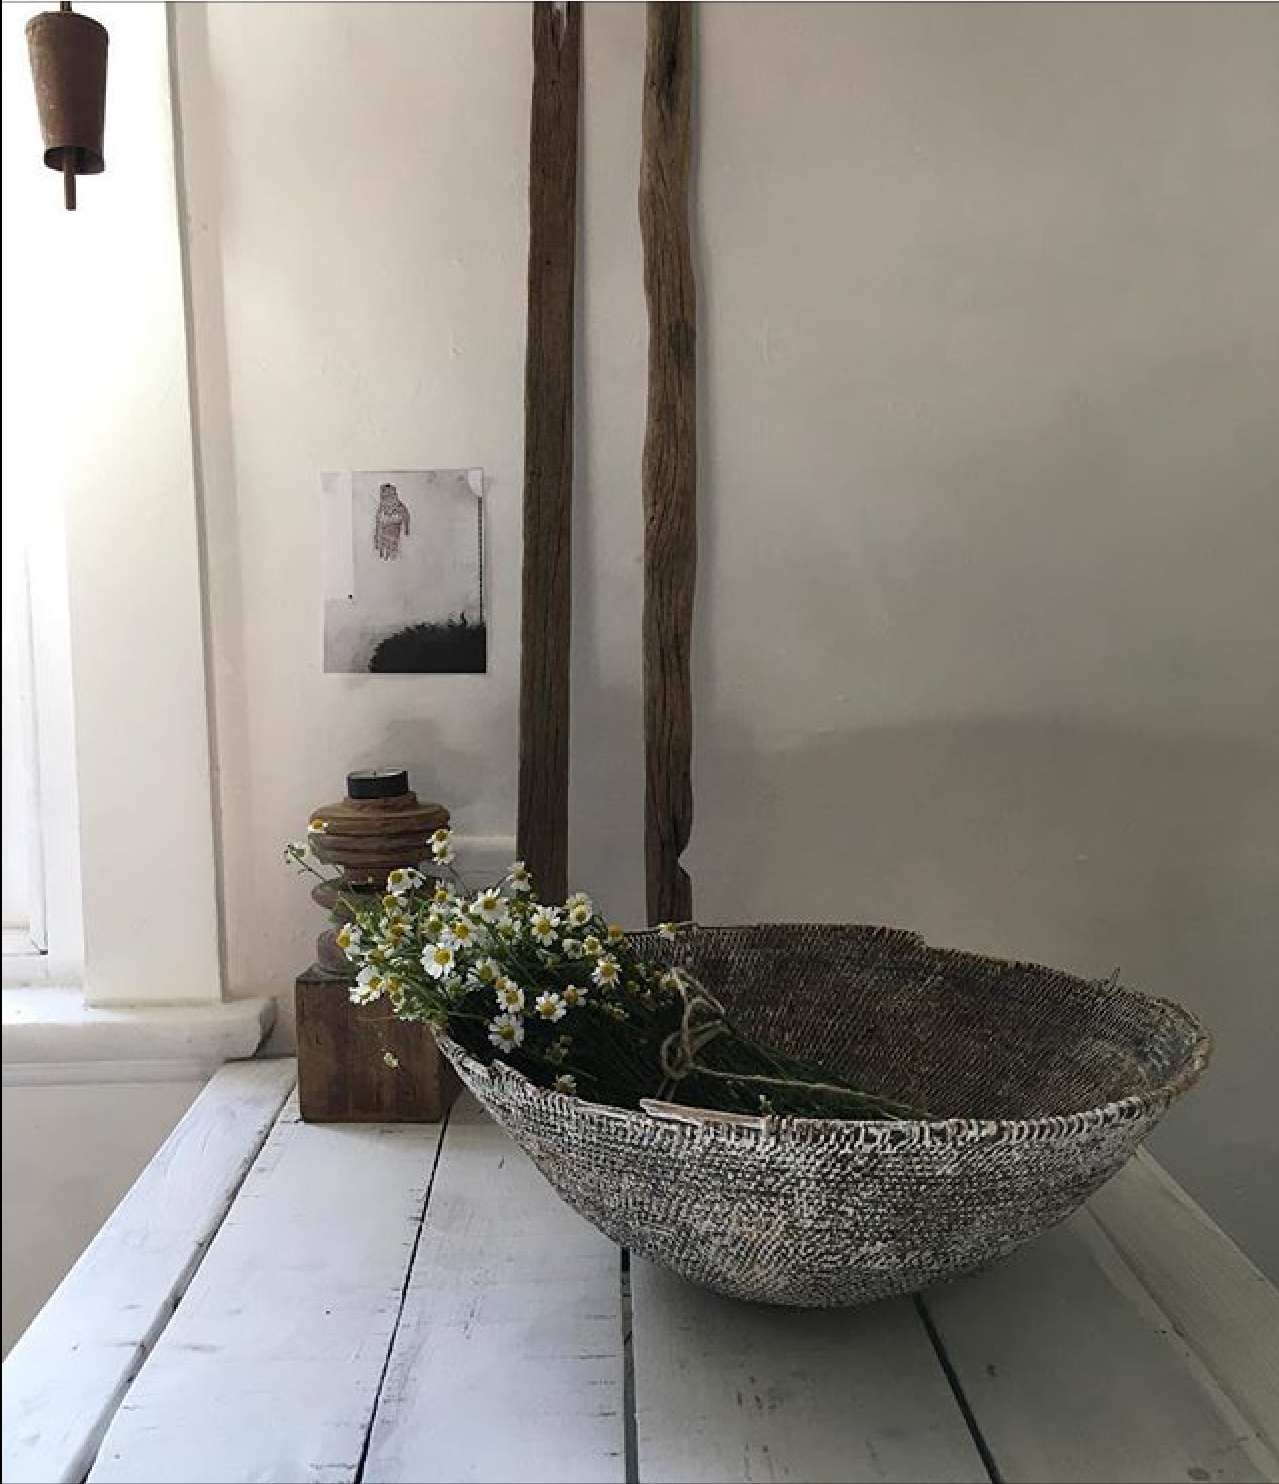 For some rustic simplicity and pared back inspiration check out our latest House of Instagram, a visual feast.